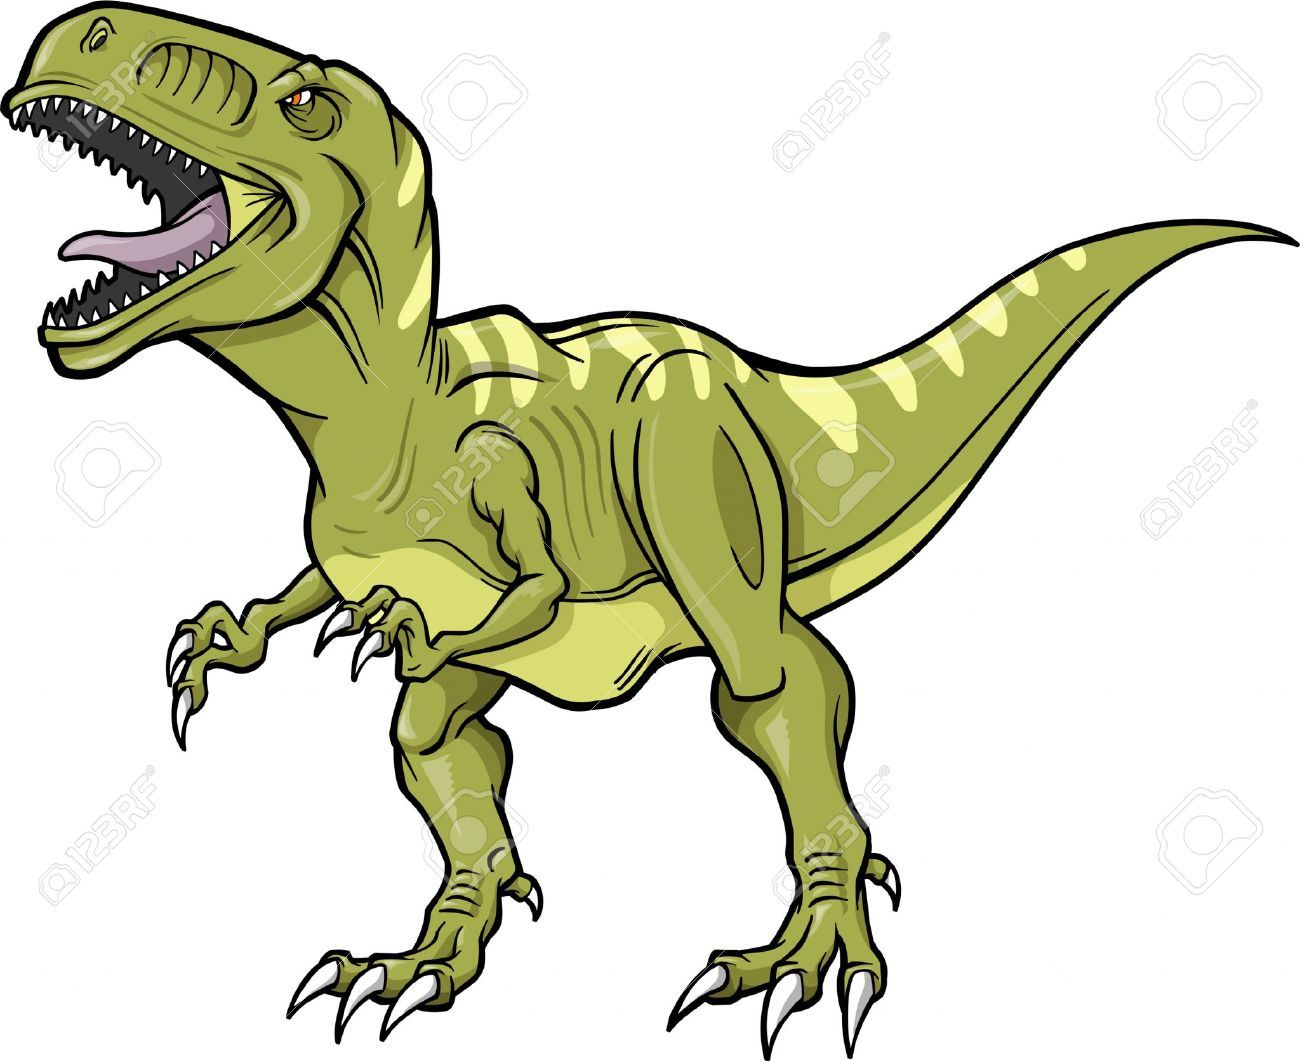 Dinosaur Vector Stock Illustrations, Cliparts And Royalty Free ...